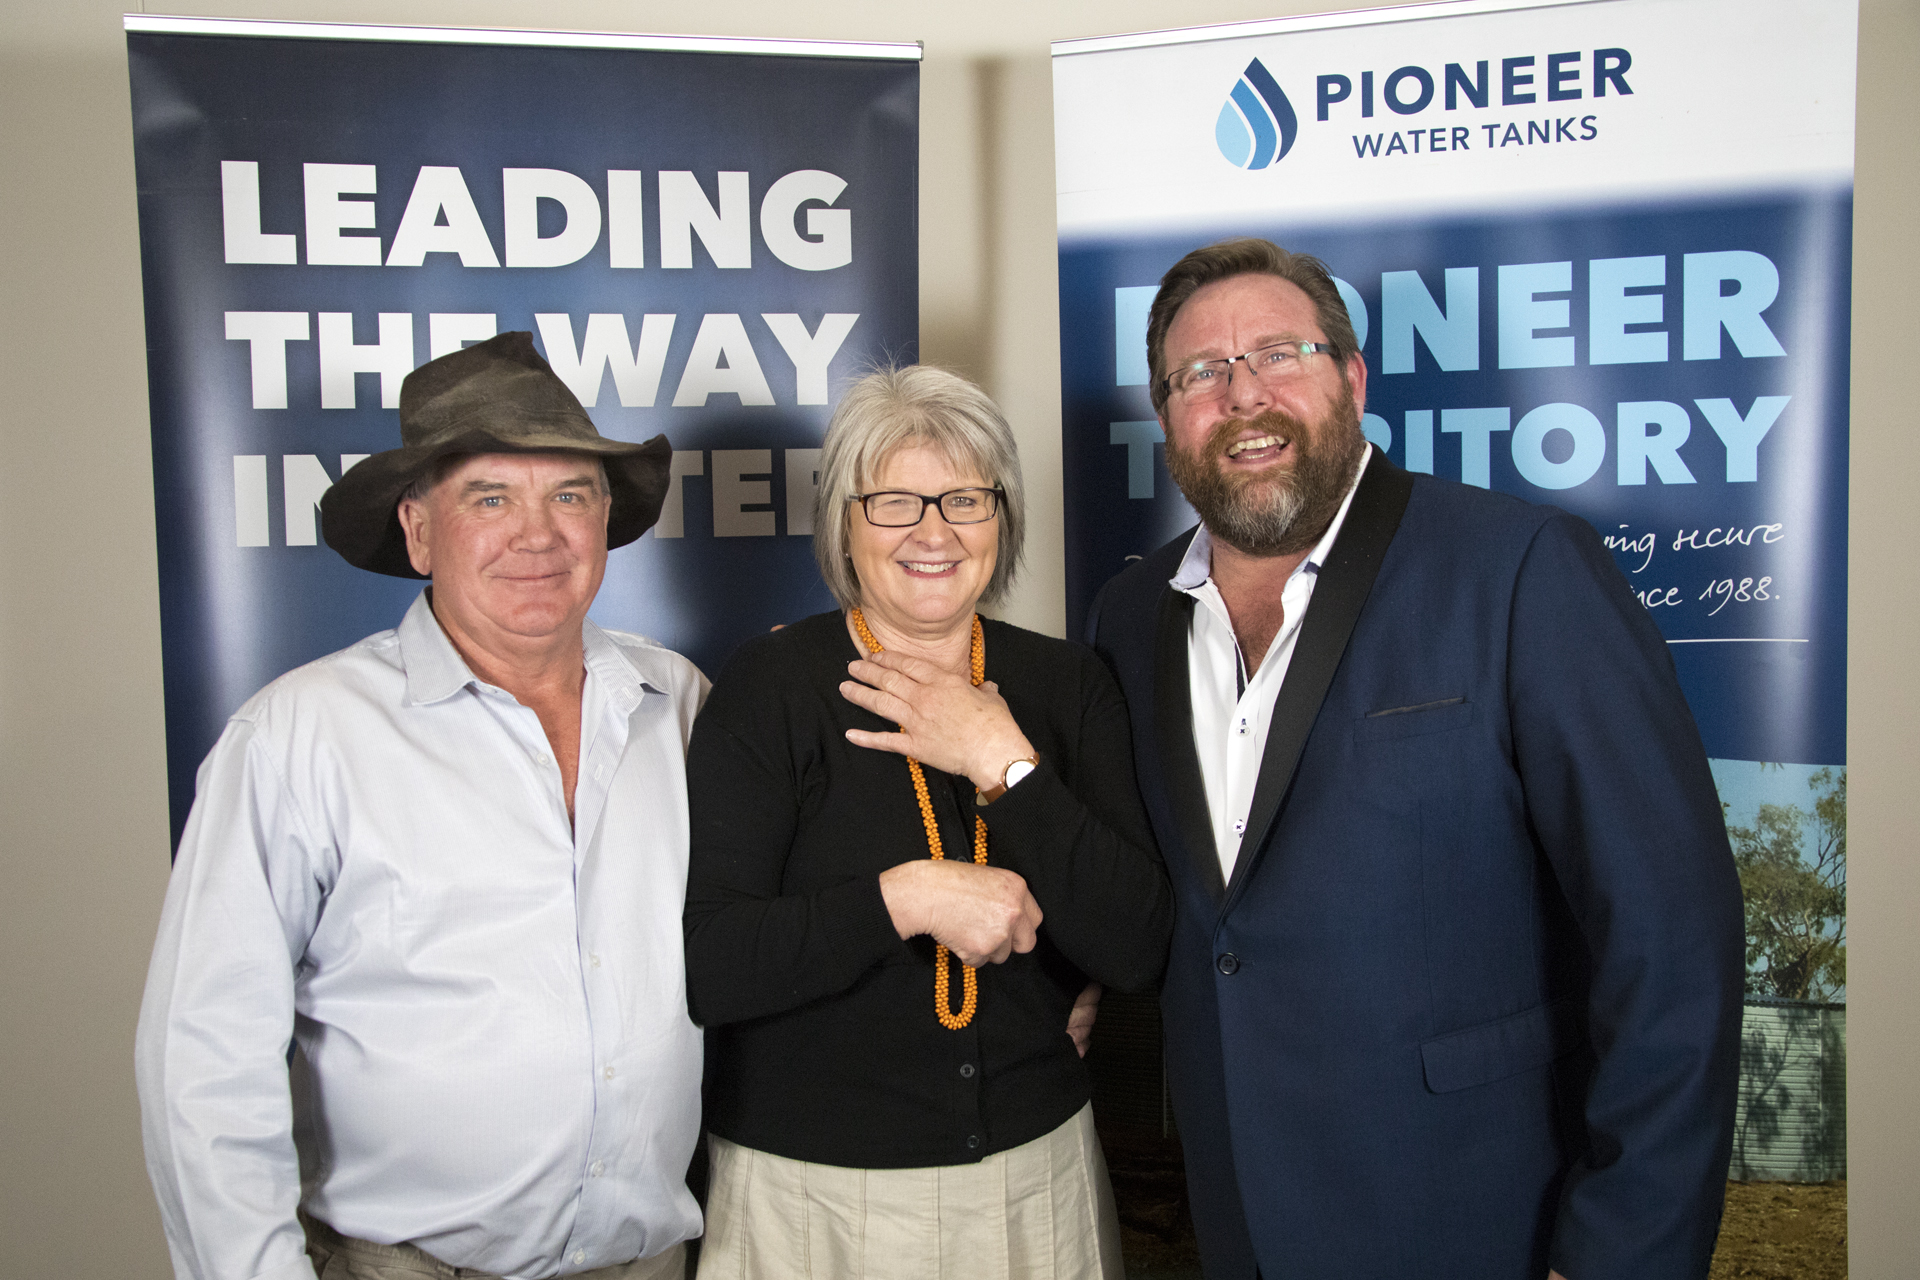 pioneer water tanks conference